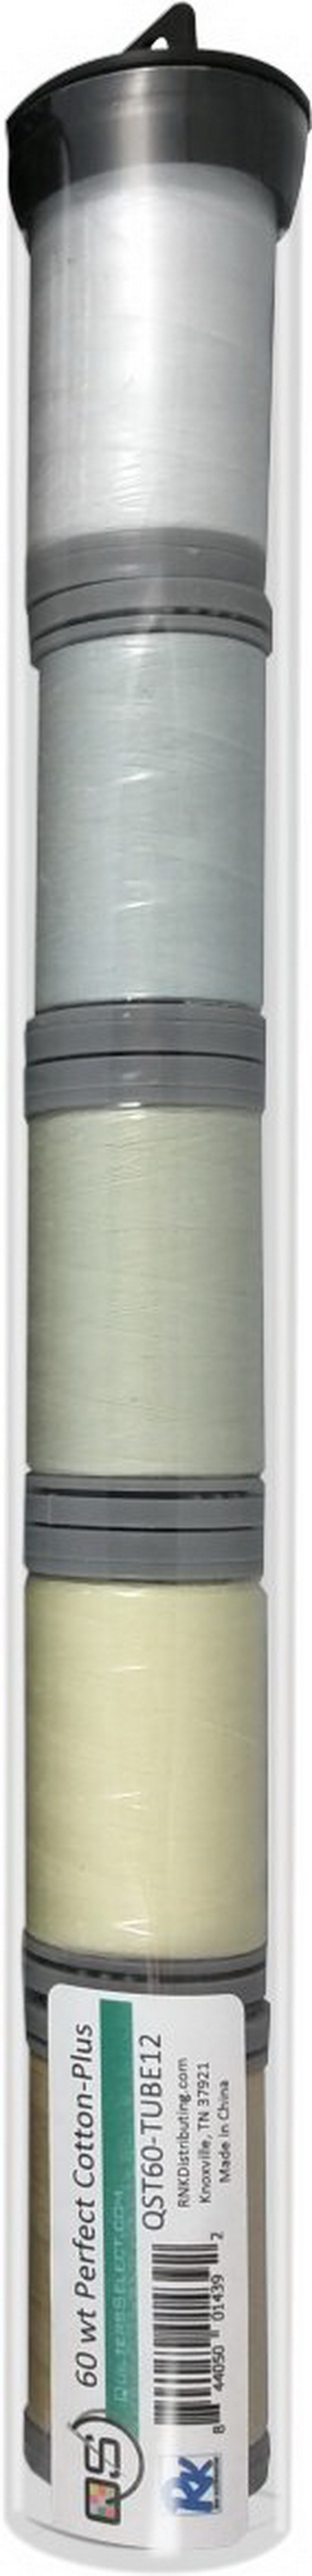 Quilters Select Perfect Cotton Plus Thread 60 Weight 400m Spools - Bundle Tube 12